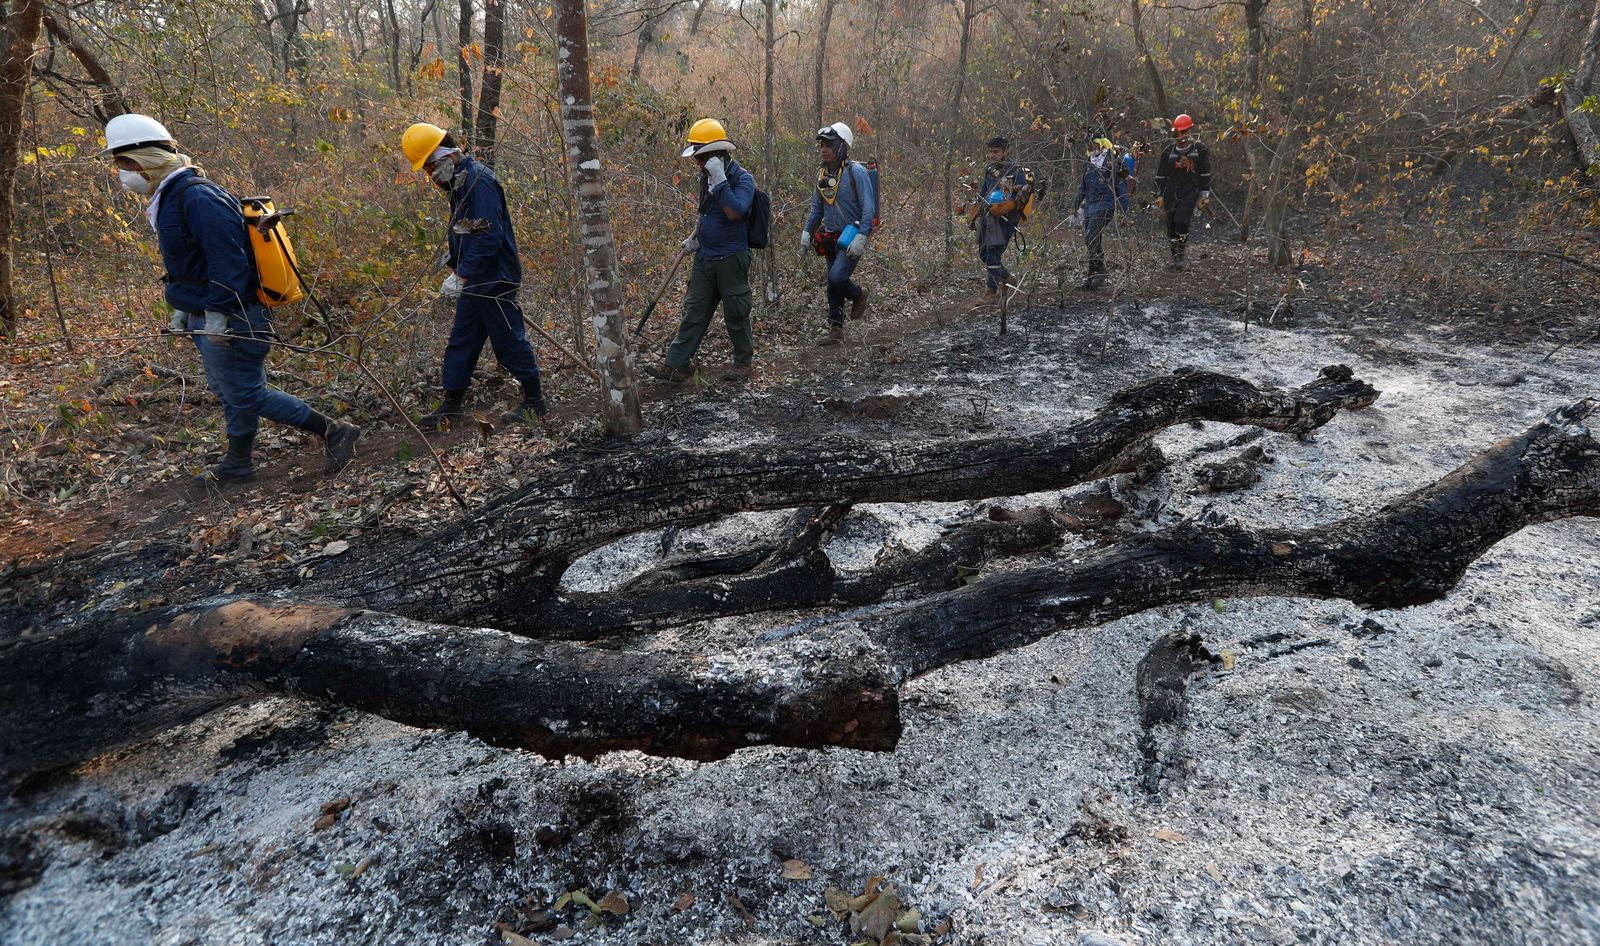 Volunteers walk past an area scorched by fires in the Chiquitania forest on the outskirts of Robore, Bolivia, Thursday, Aug. 29, 2019. While some of the fires are burning in Bolivia's share of the Amazon, the largest blazes were in the Chiquitania region of southeastern Bolivia. It's zone of dry forest, farmland and open prairies that has seen an expansion of farming and ranching in recent years.  (AP Photo/Juan Karita)